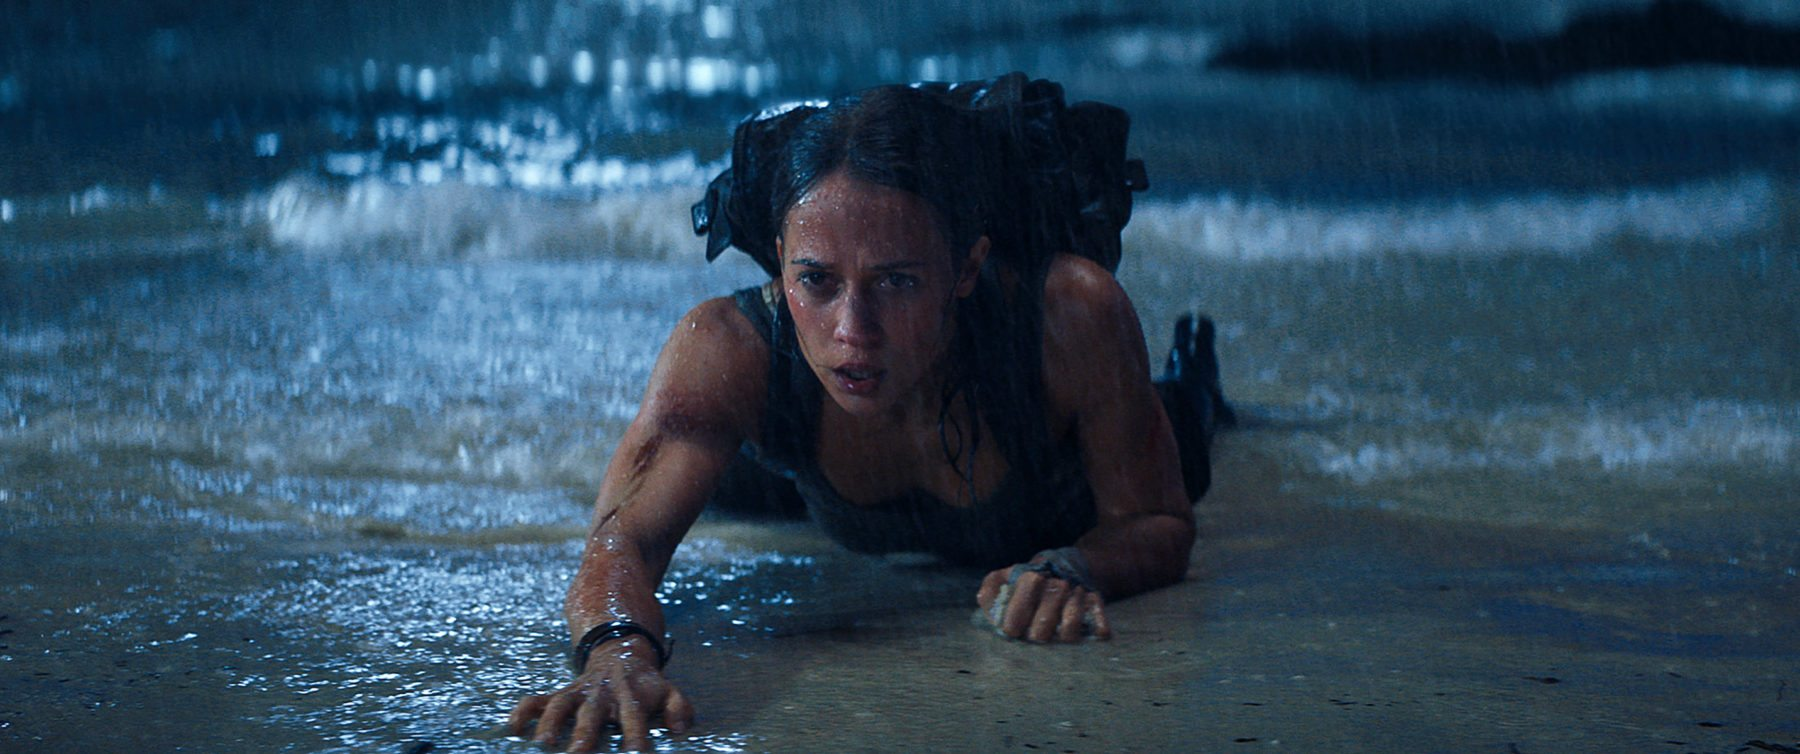 105508-Tomb-Raider-promo-images-28.jpg